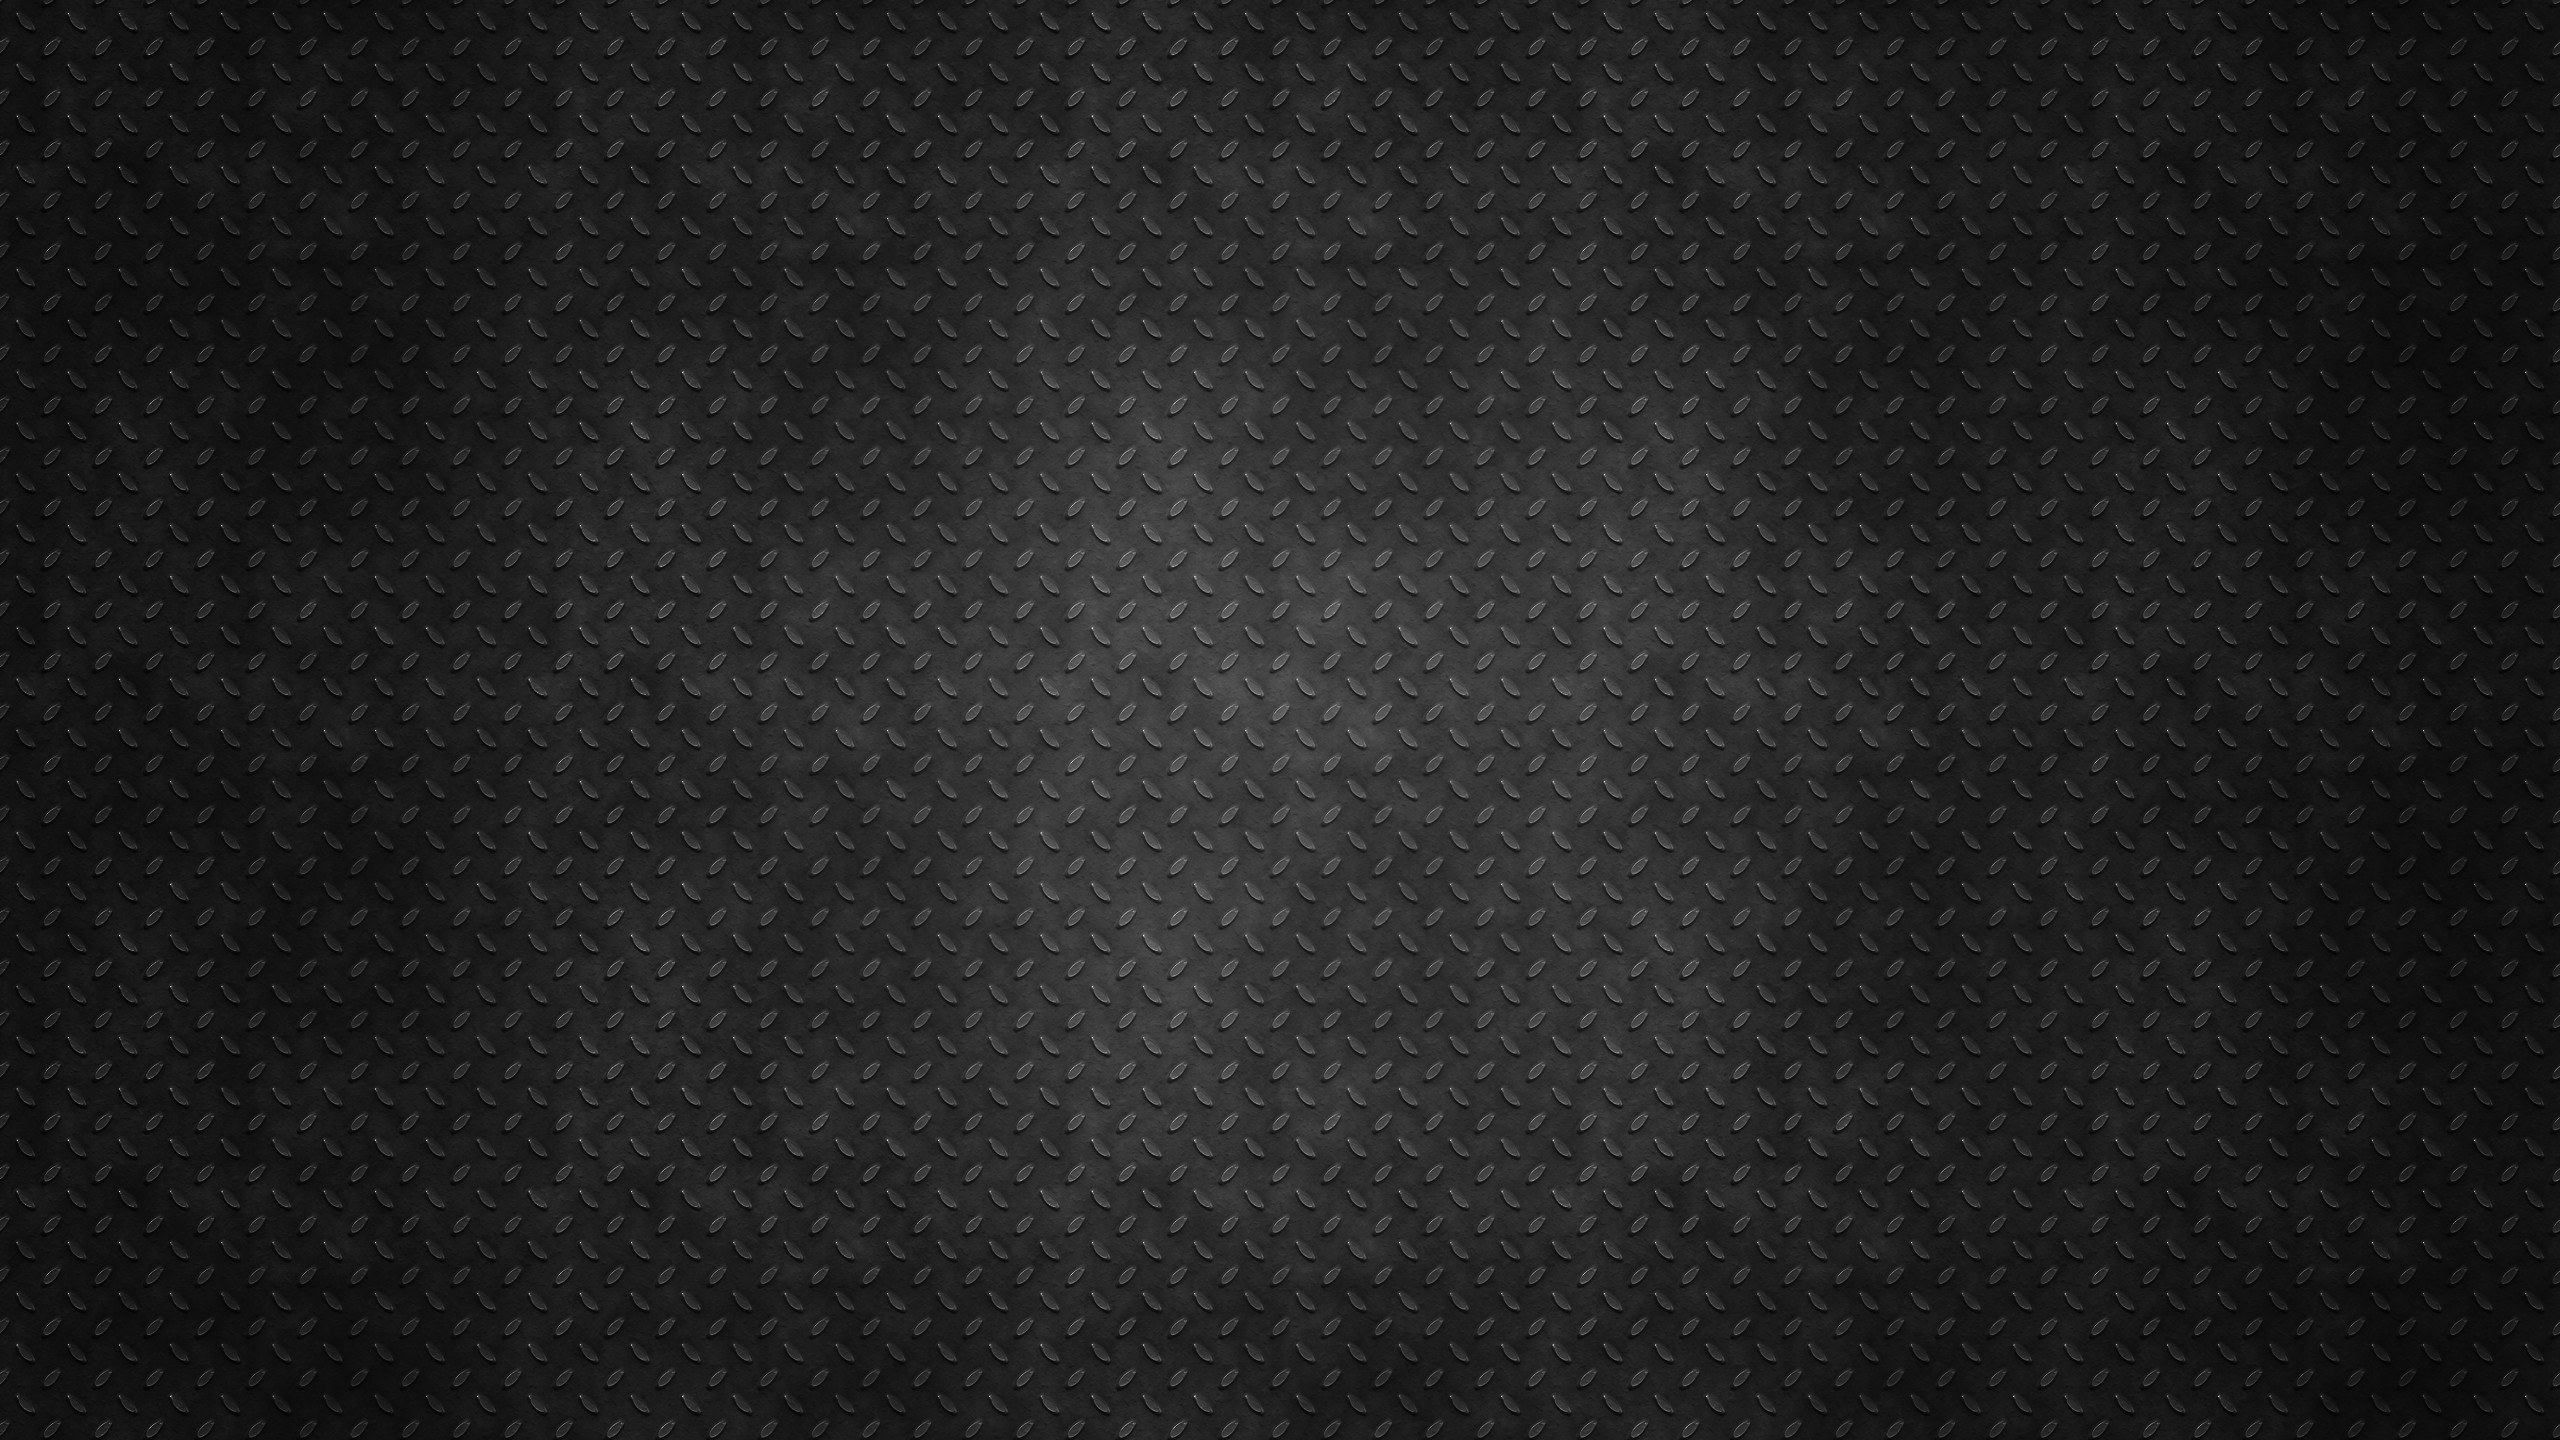 Black Metal Textured Background Abstract Wallpaper